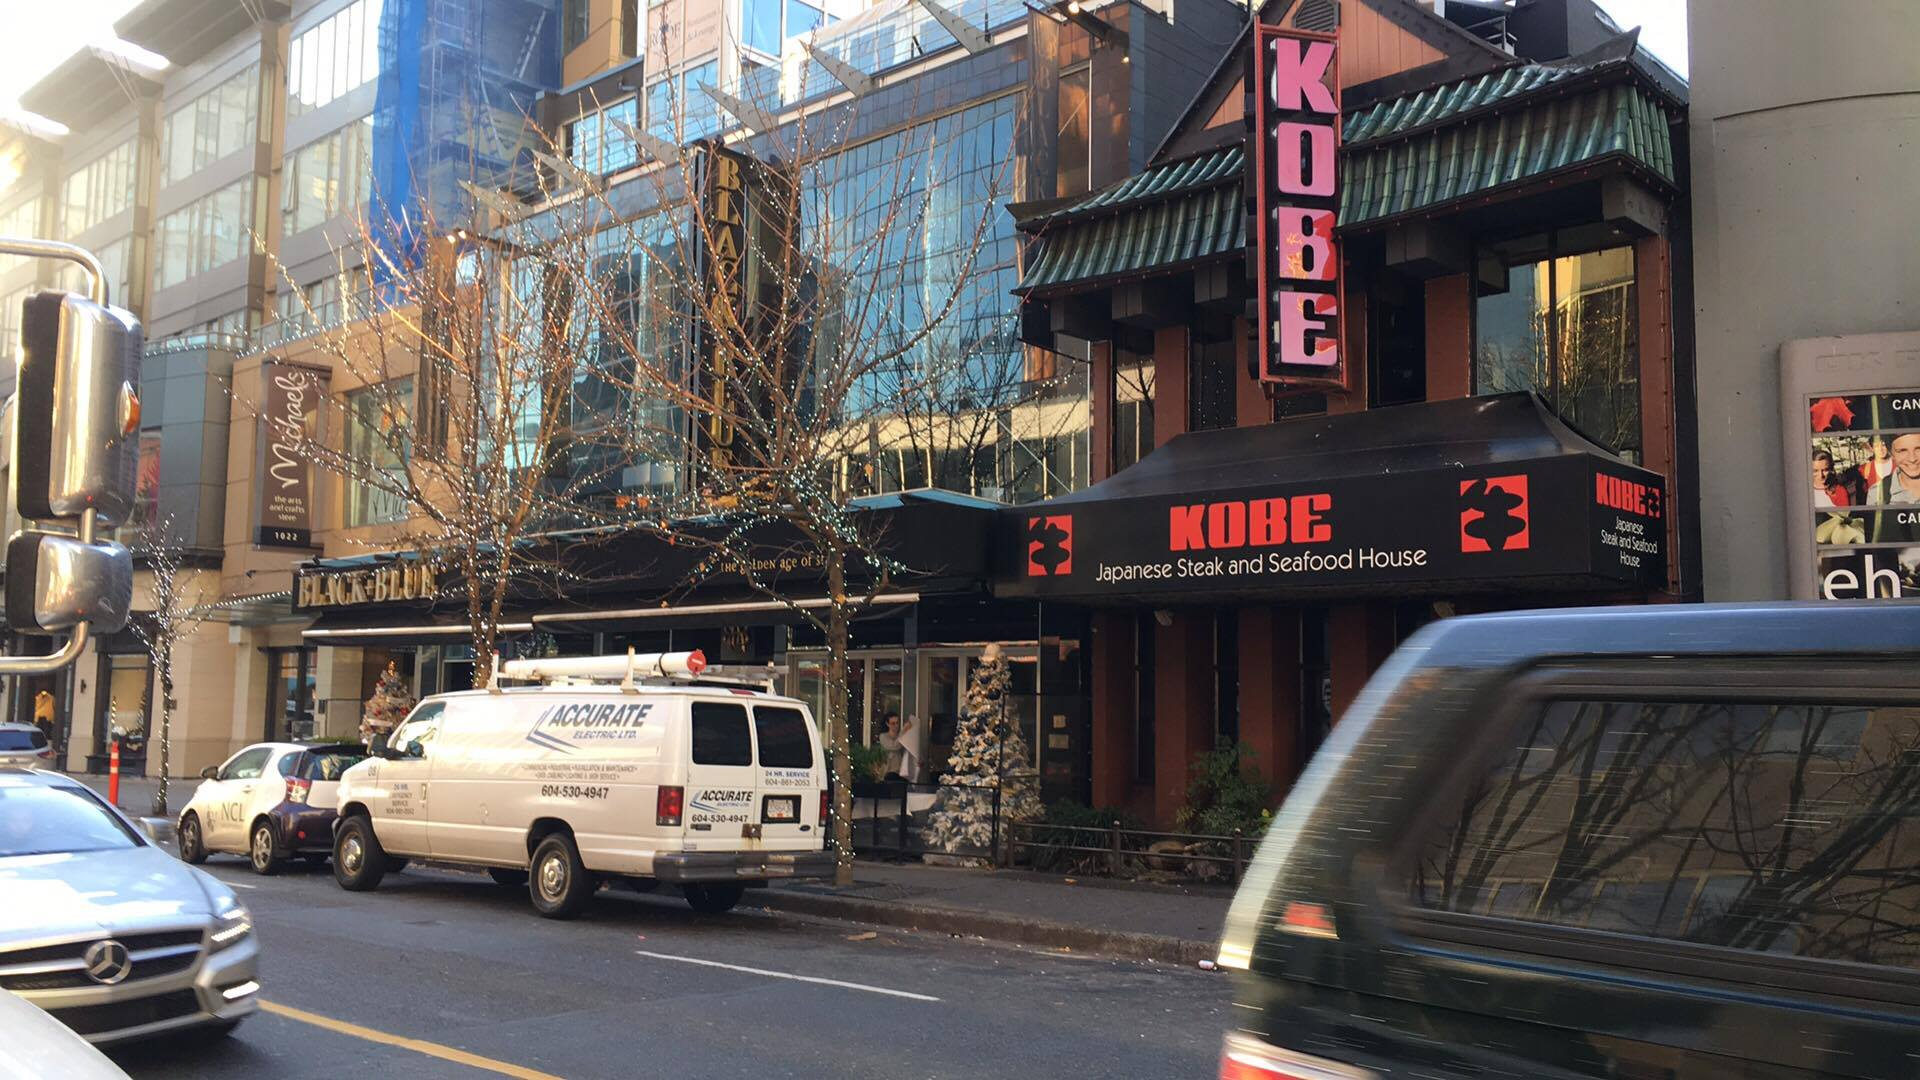 ('Restaurant row' in the mid-1000 block of Alberni street -- the Kobe Steak House will eventually be demolished for a new retail space. Photo: Lee Rivett)